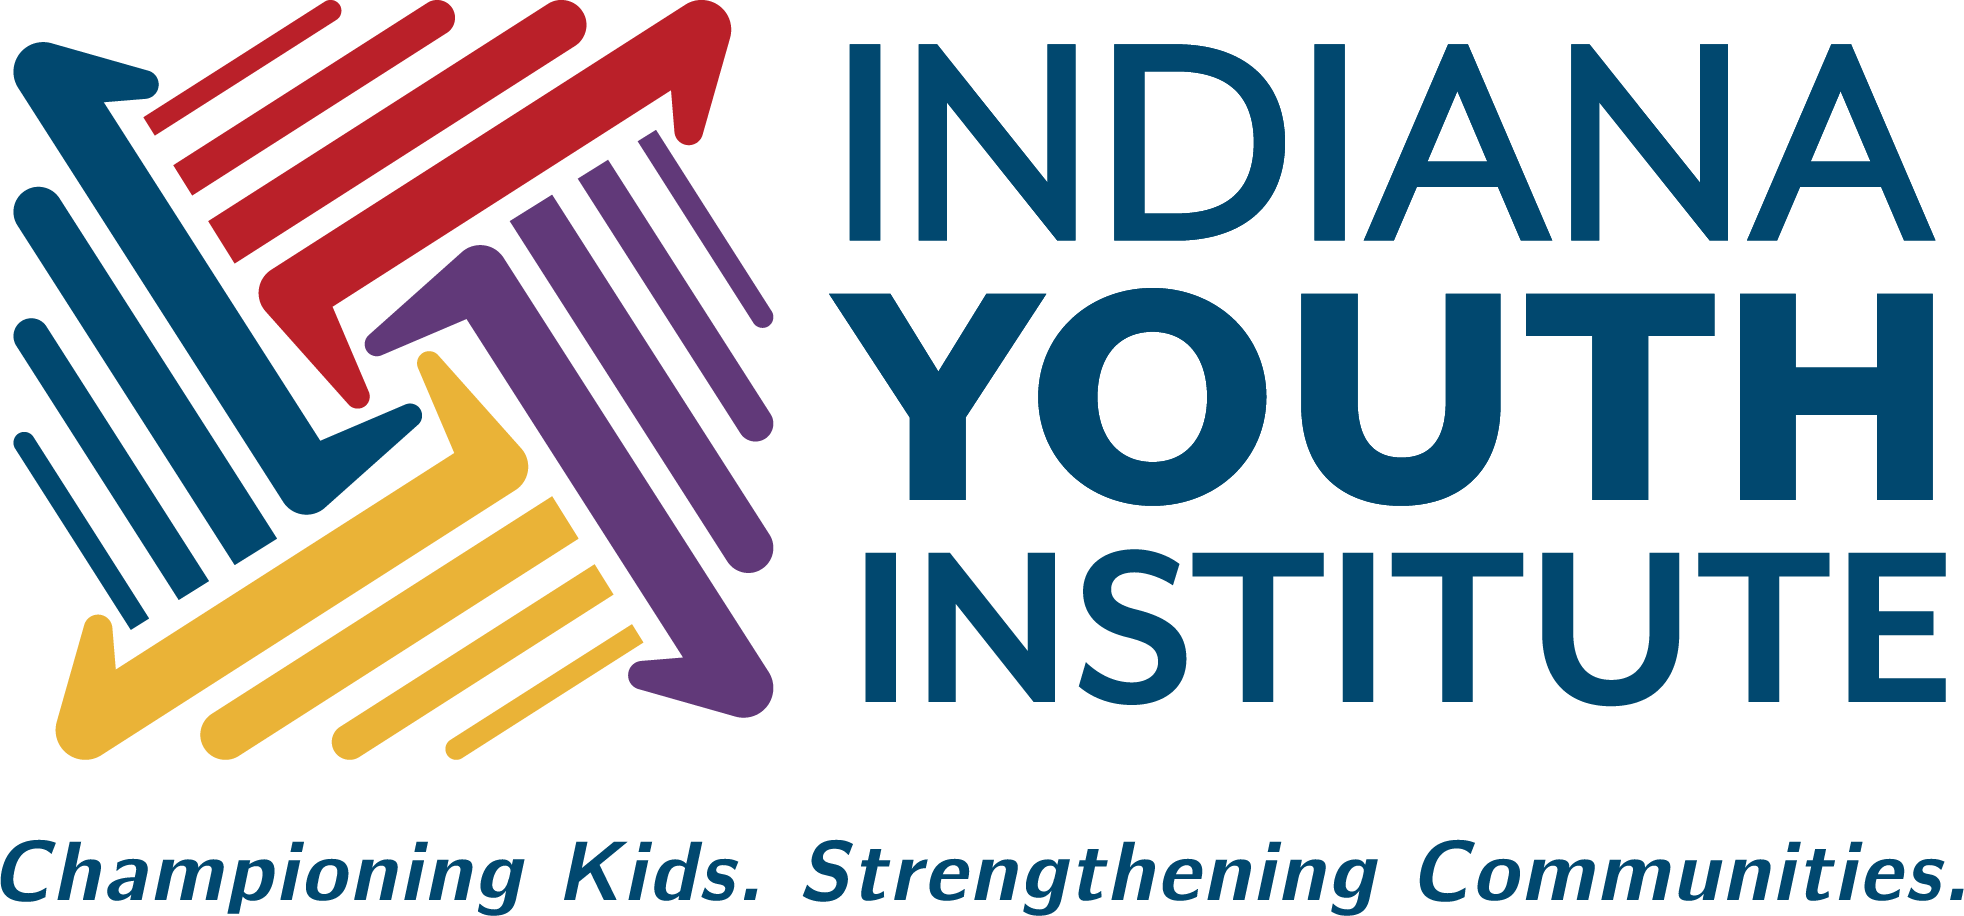 Indiana Youth Institute - Championing Kids  Strengthening